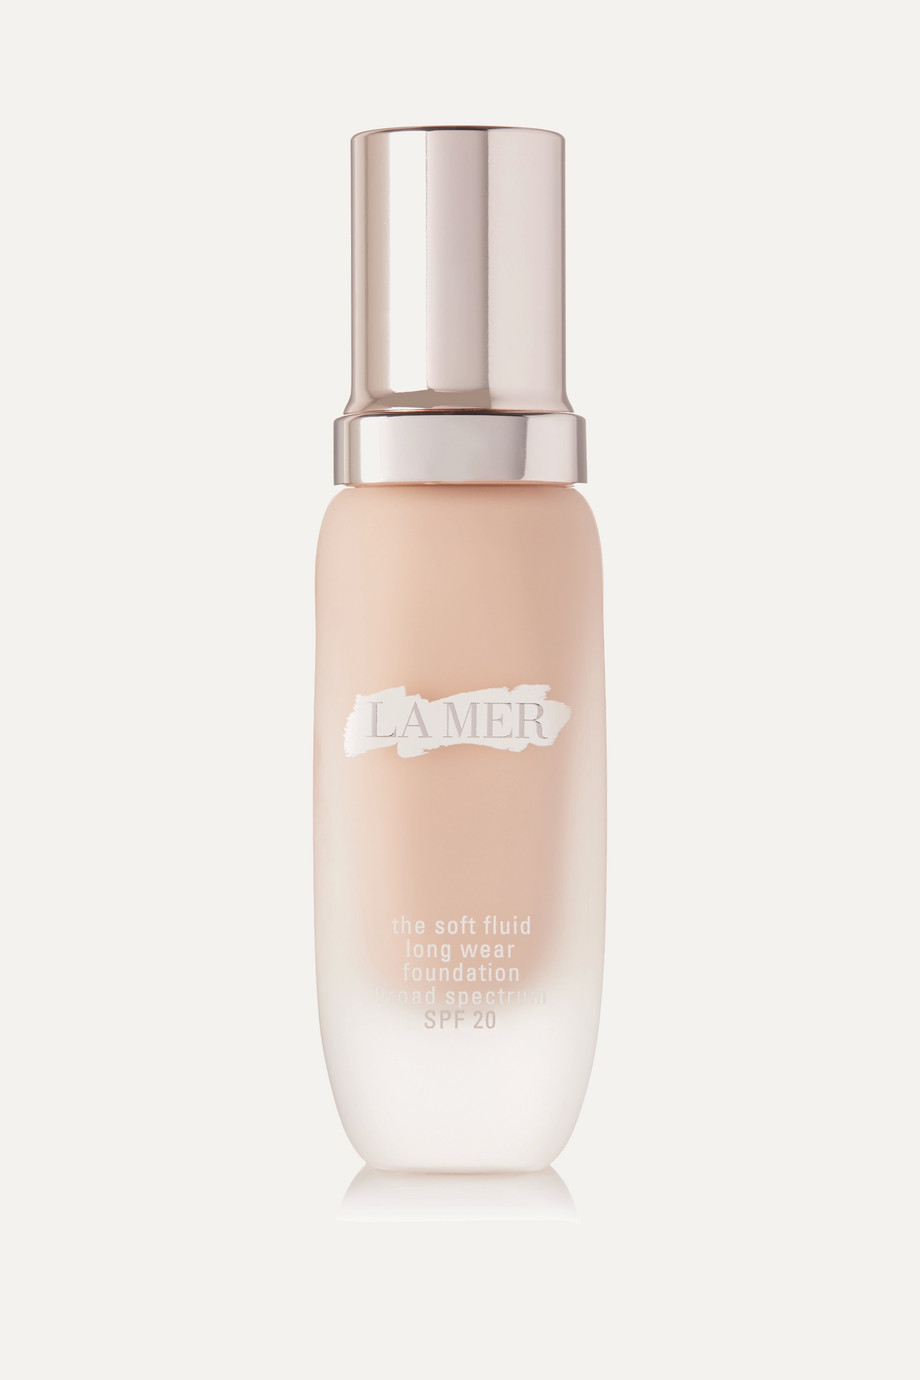 La Mer Soft Fluid Long Wear Foundation - Porcelain, 30ml